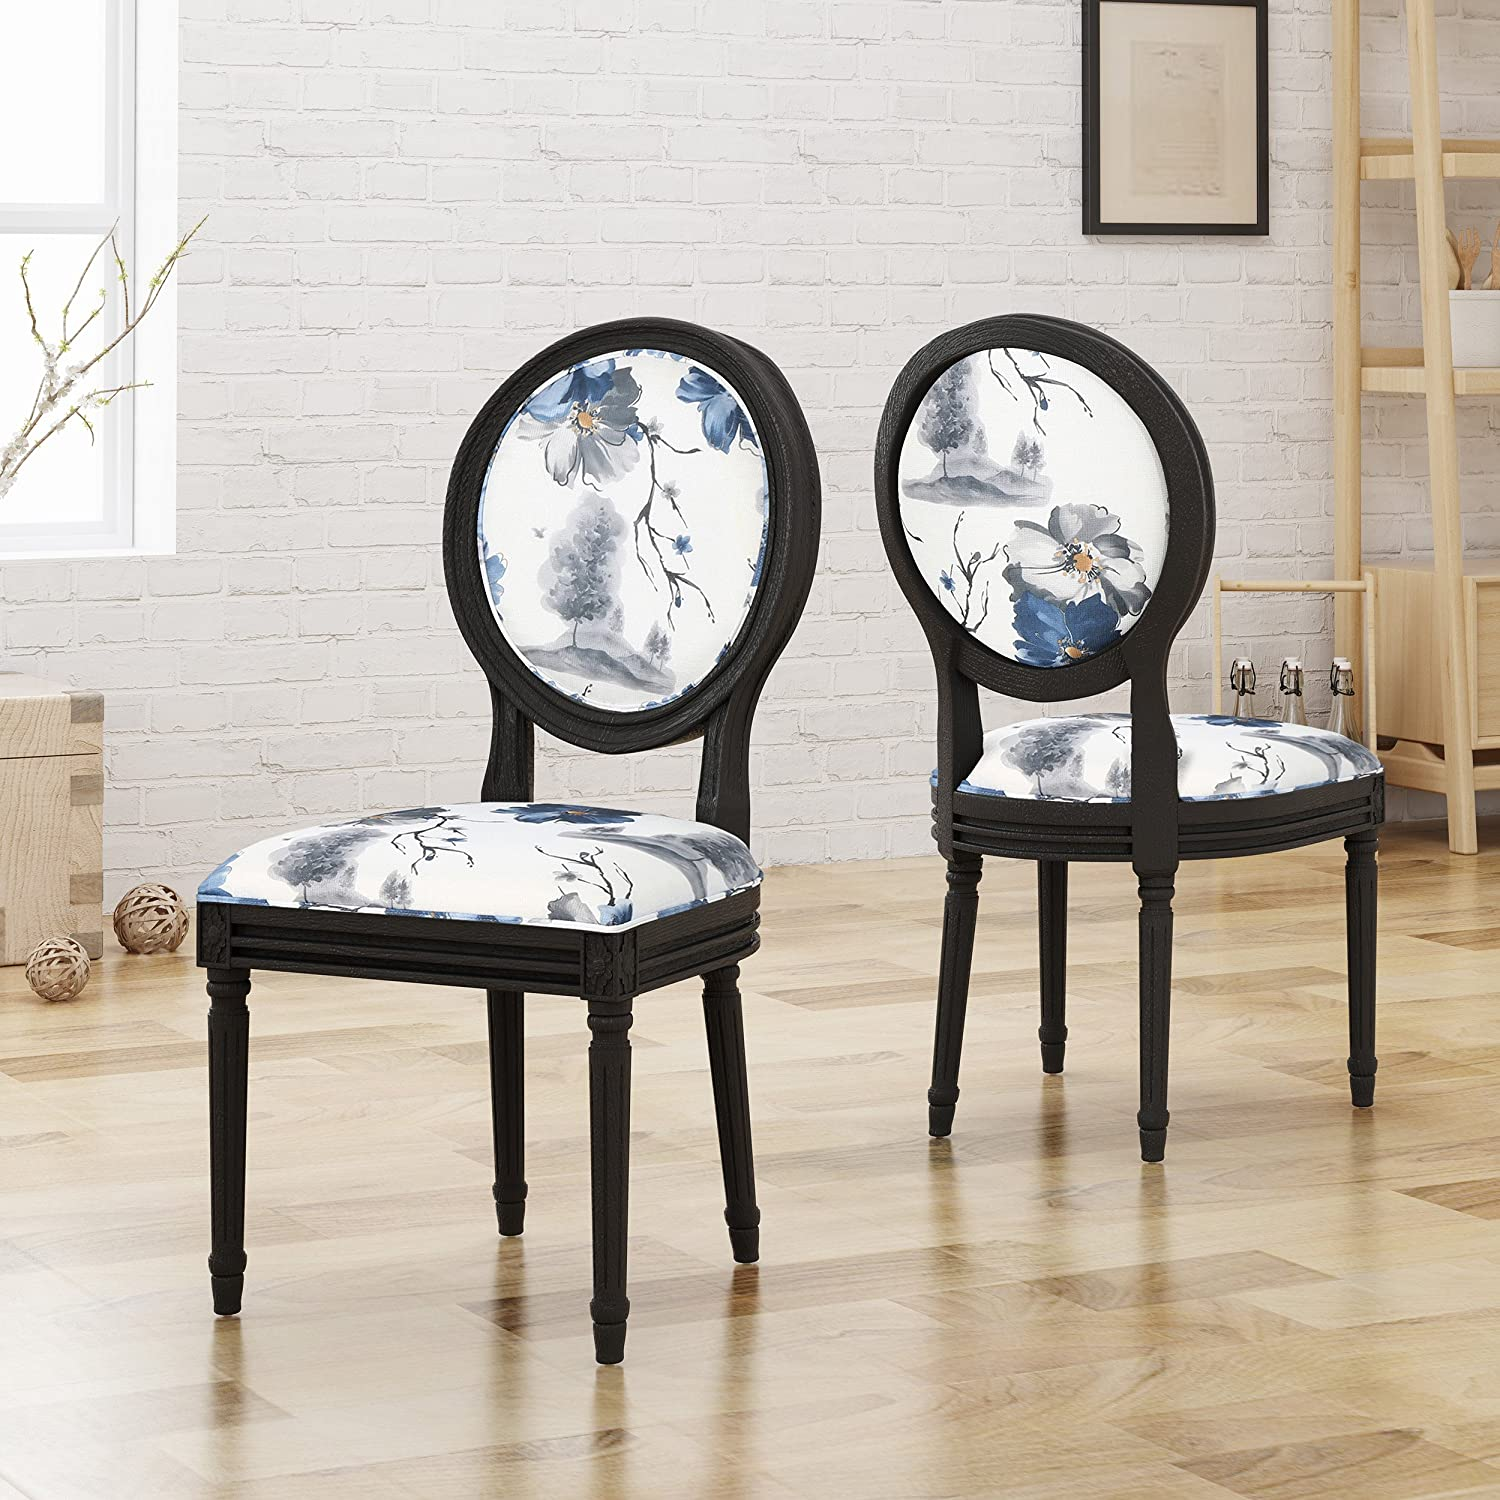 Christopher Knight Home 305665 Hero Traditional Fabric Dining Chairs, Floral Print